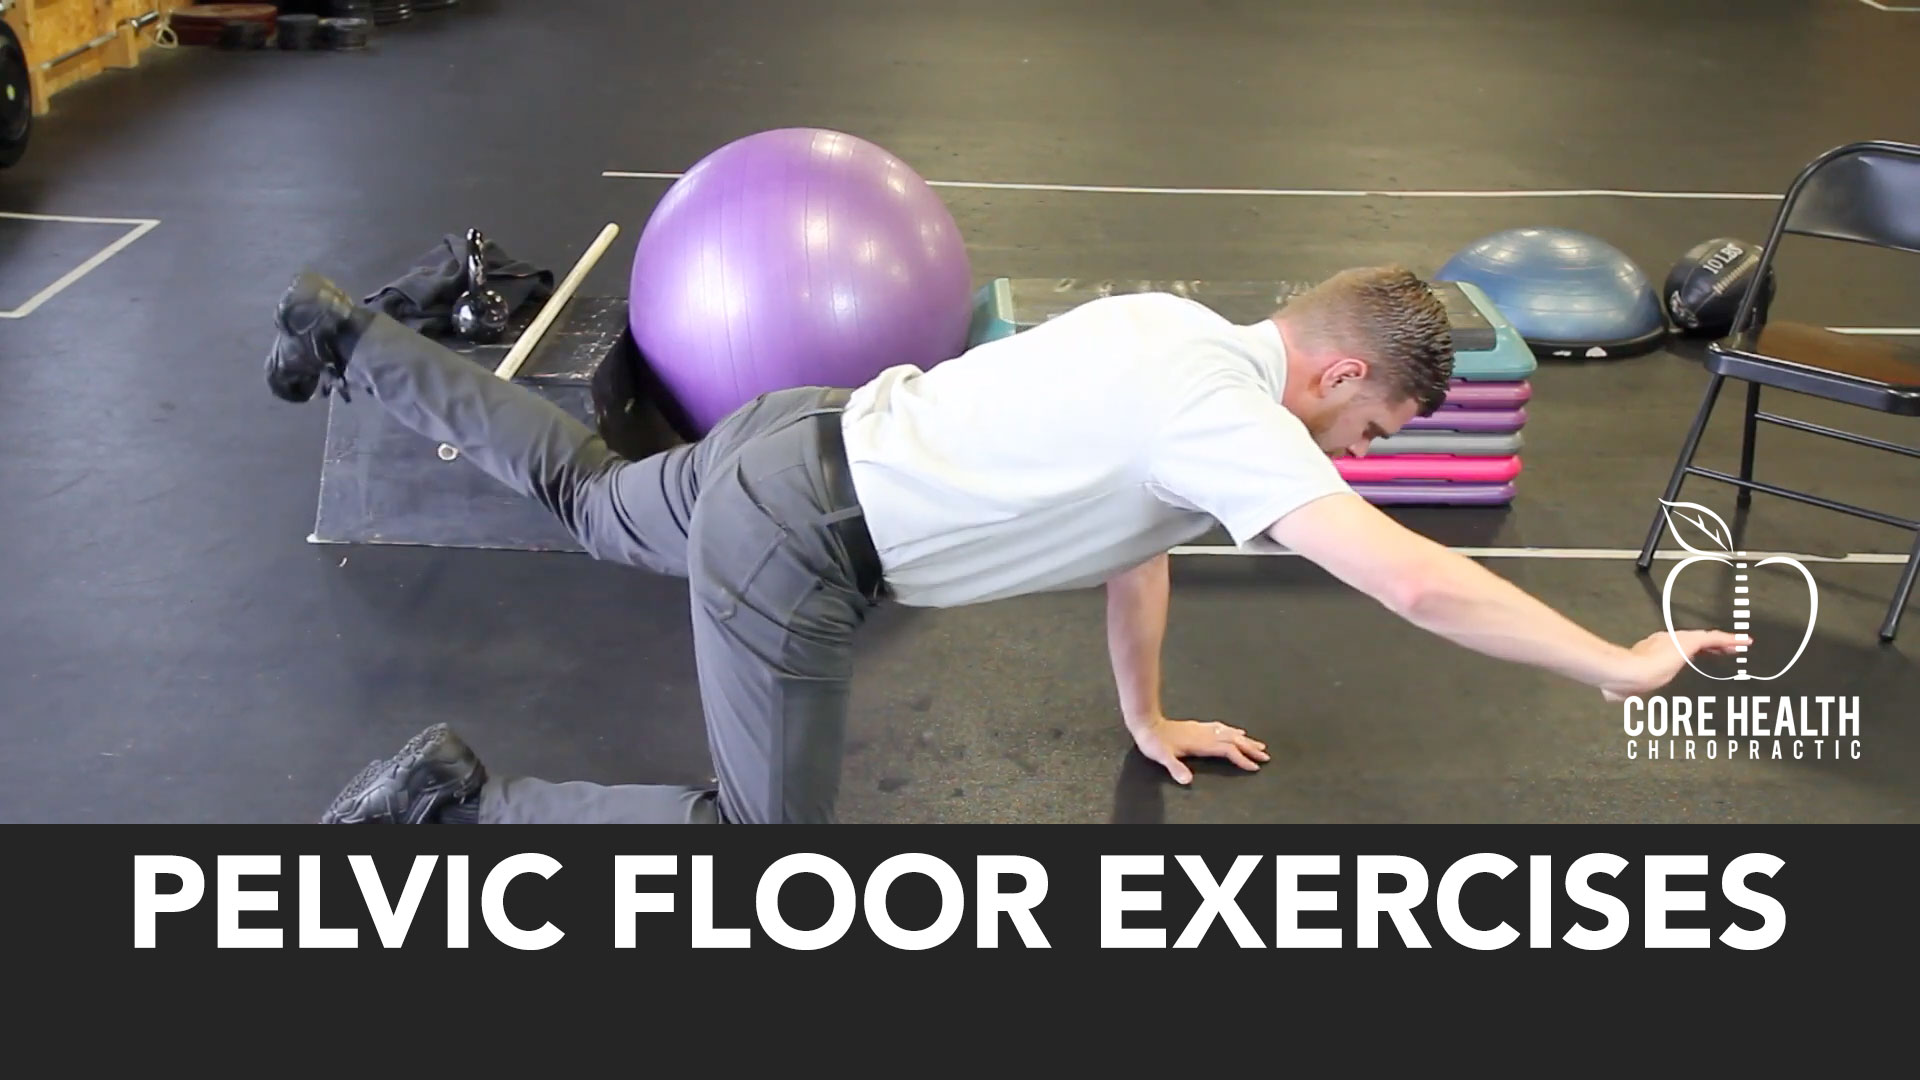 Pelvic Floor Exercises Core Health Chiropractic